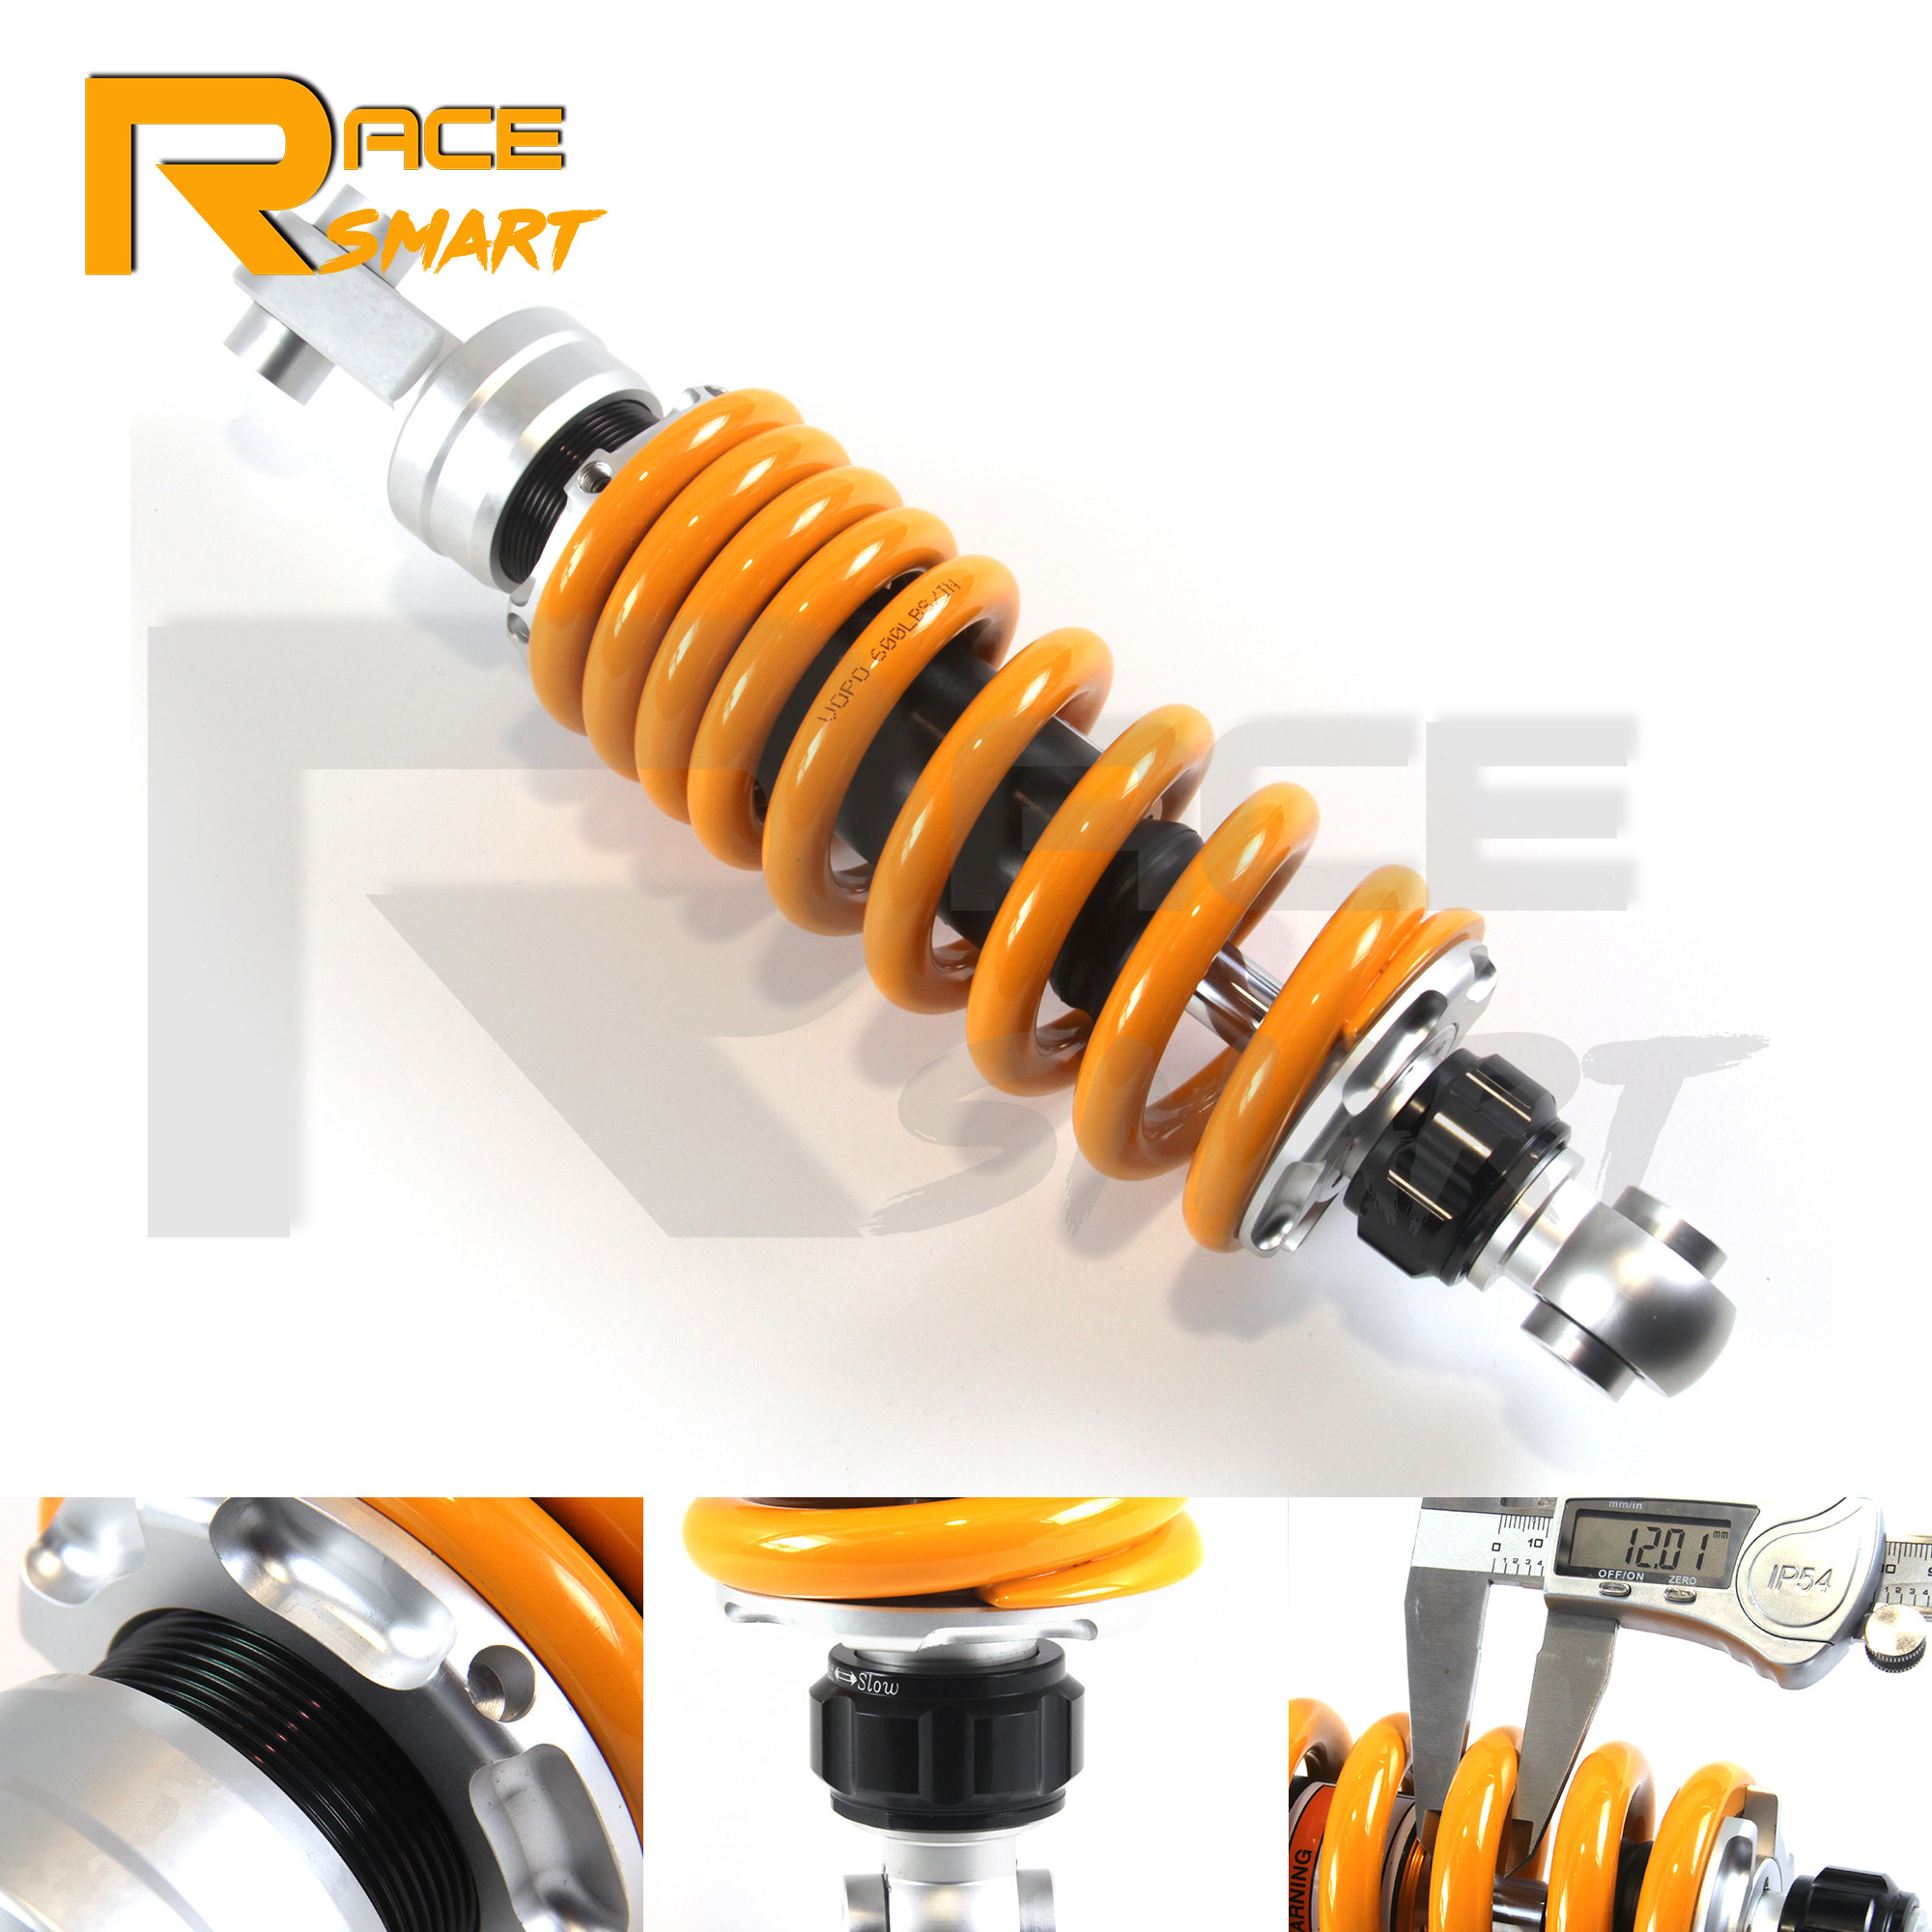 For HONDA NC 750X Universal 305mm Motorcycle Rear Adjustable Shock Absorber Rear Suspension NC750 X NC750S NC750X DCT 2014-2018